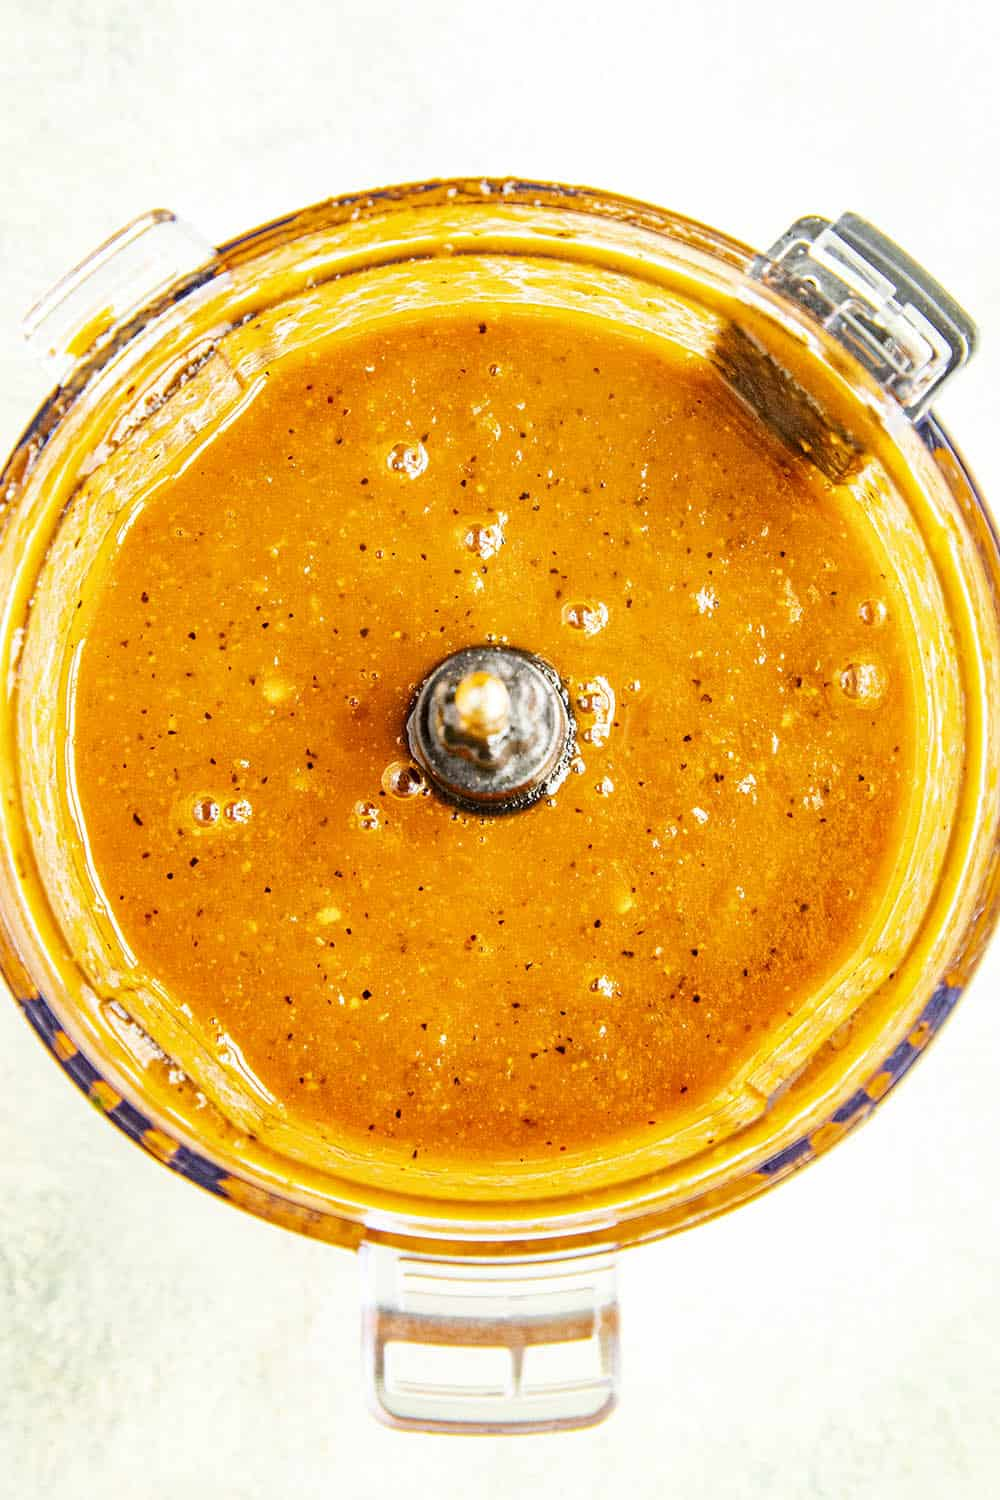 Processed bbq sauce in a food processor